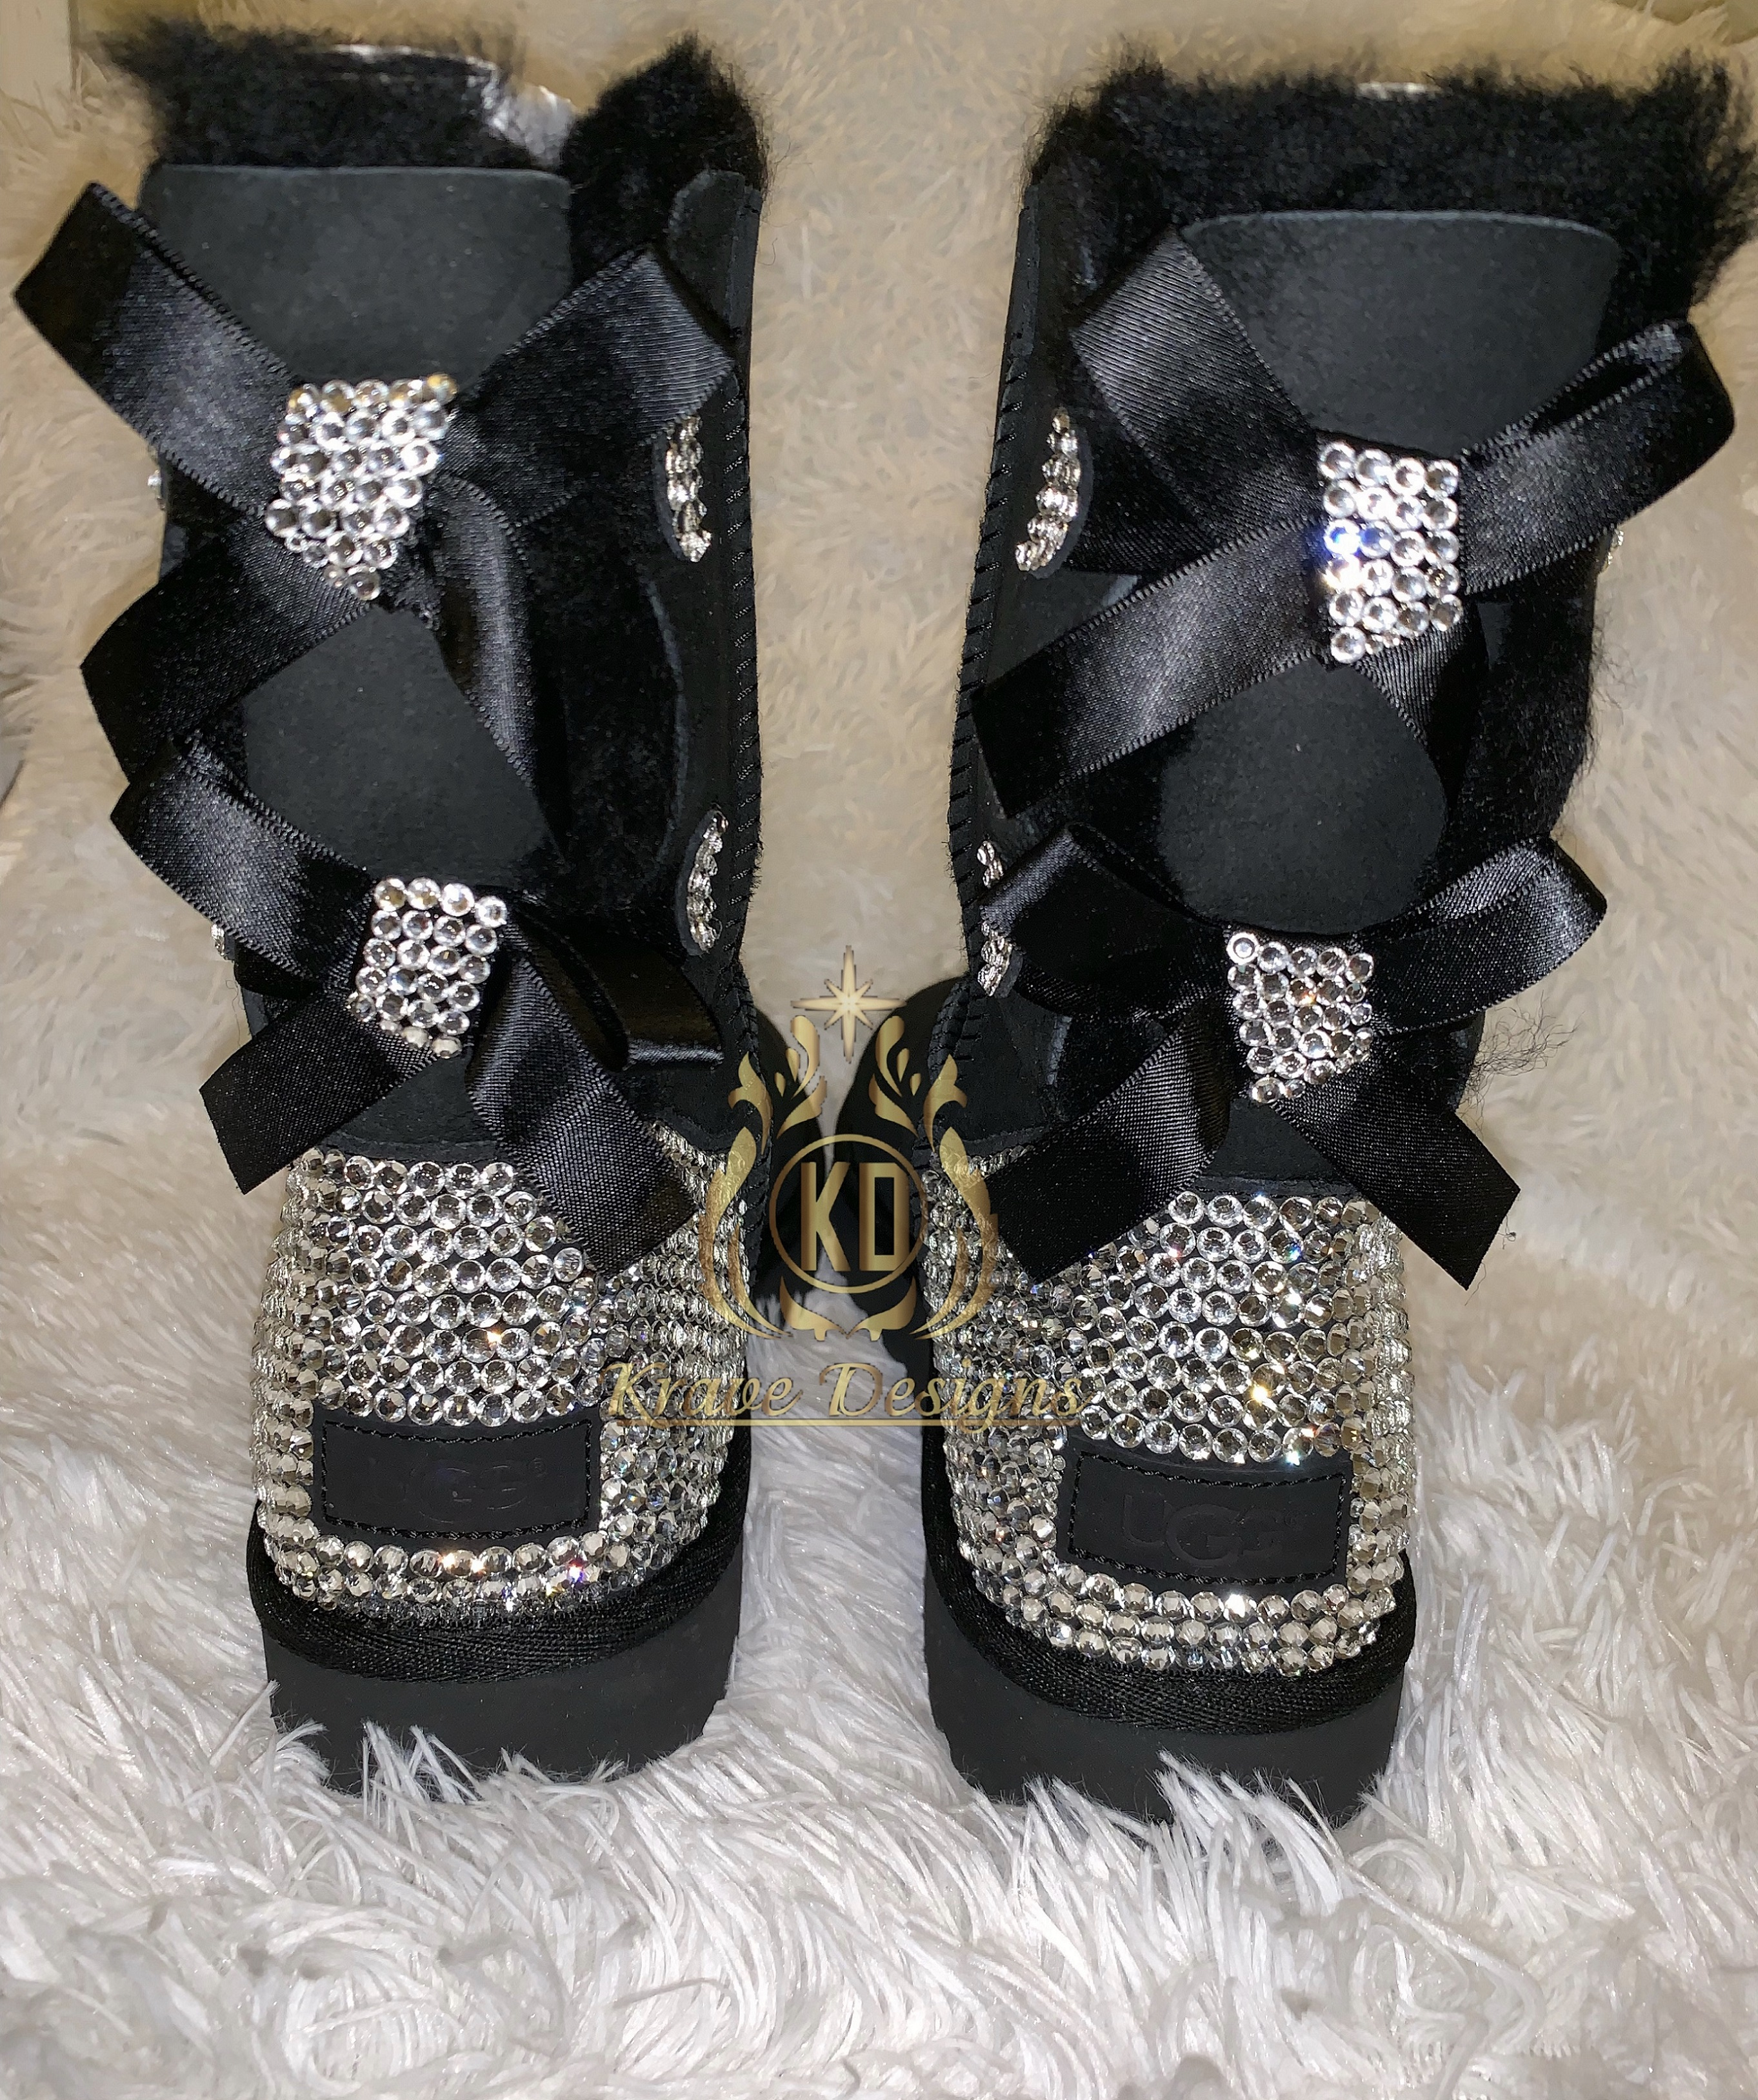 67cdc8dcd Bling Rhinestone UGG Boots (Authentic) · Krave Designs Custom Gifts ...